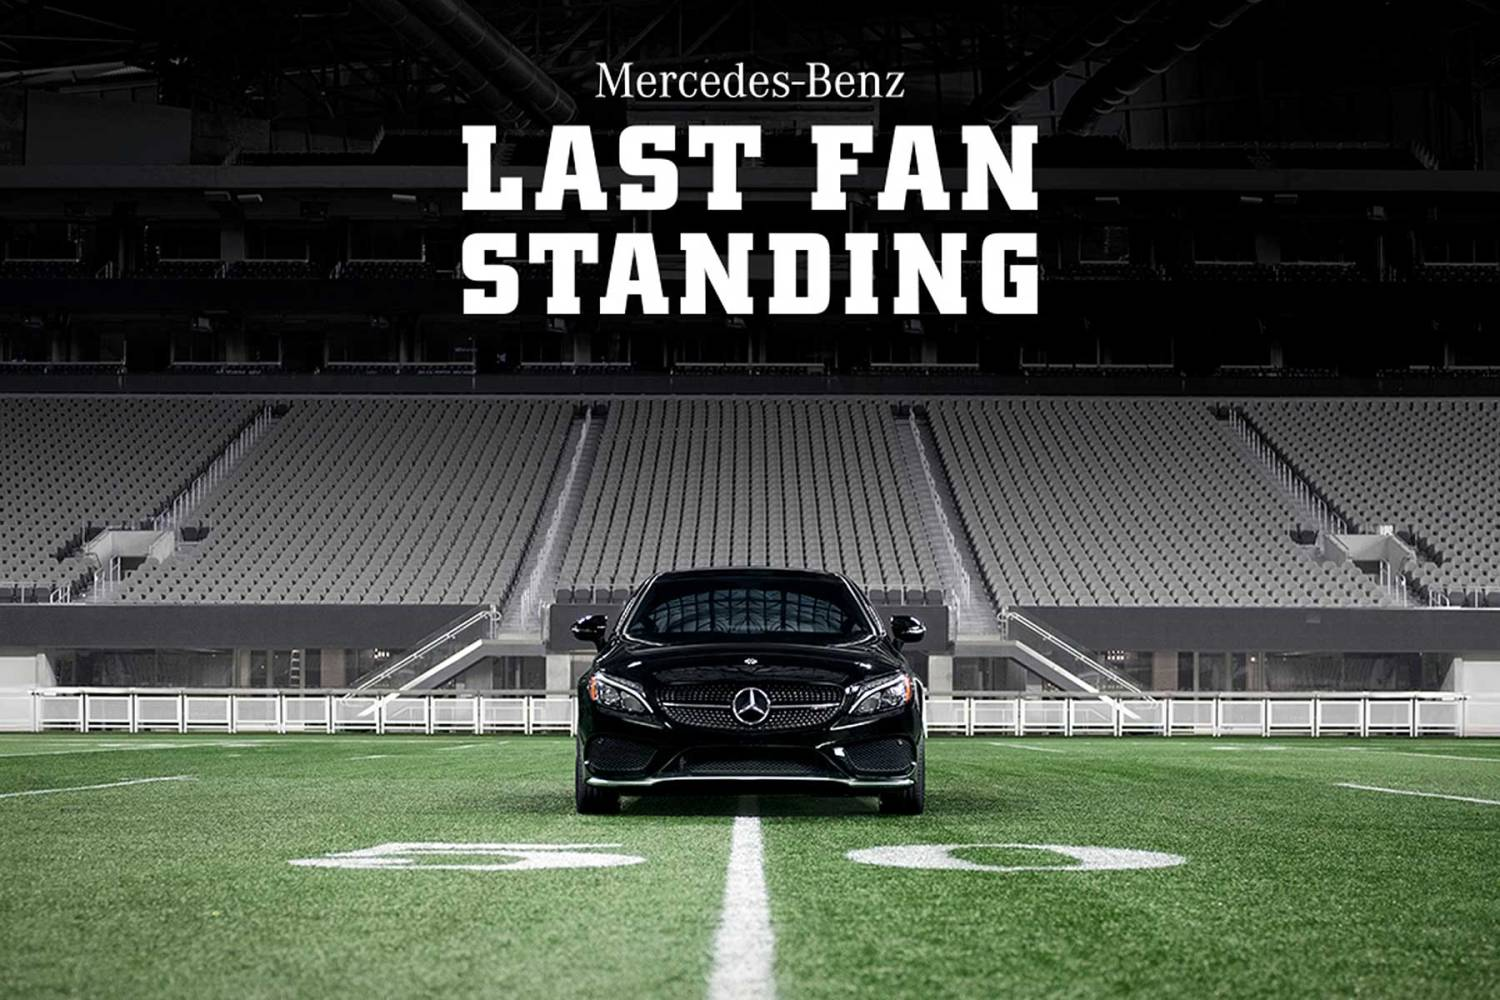 Mercedes-AMG Super Bowl